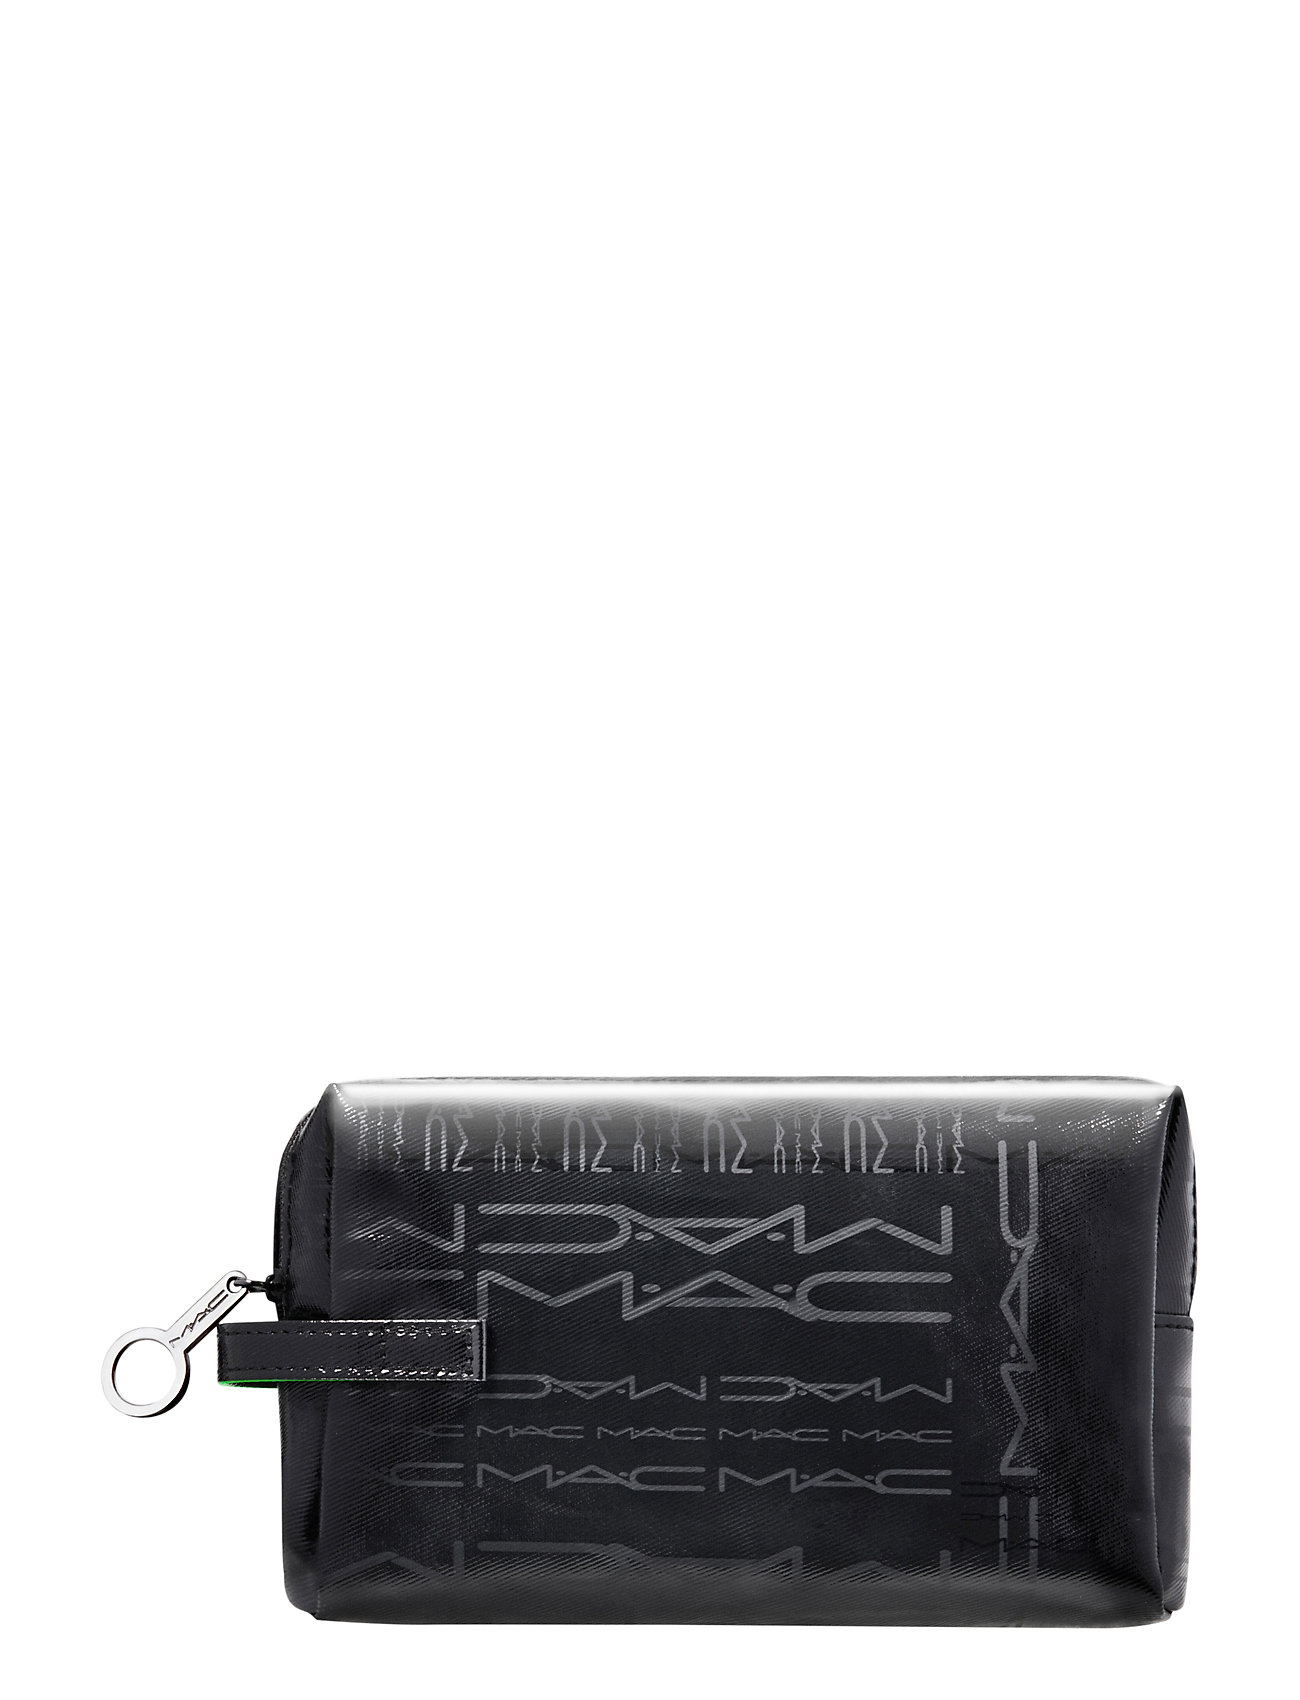 Image of Bags Signature - Rectangle/Small (3067517641)